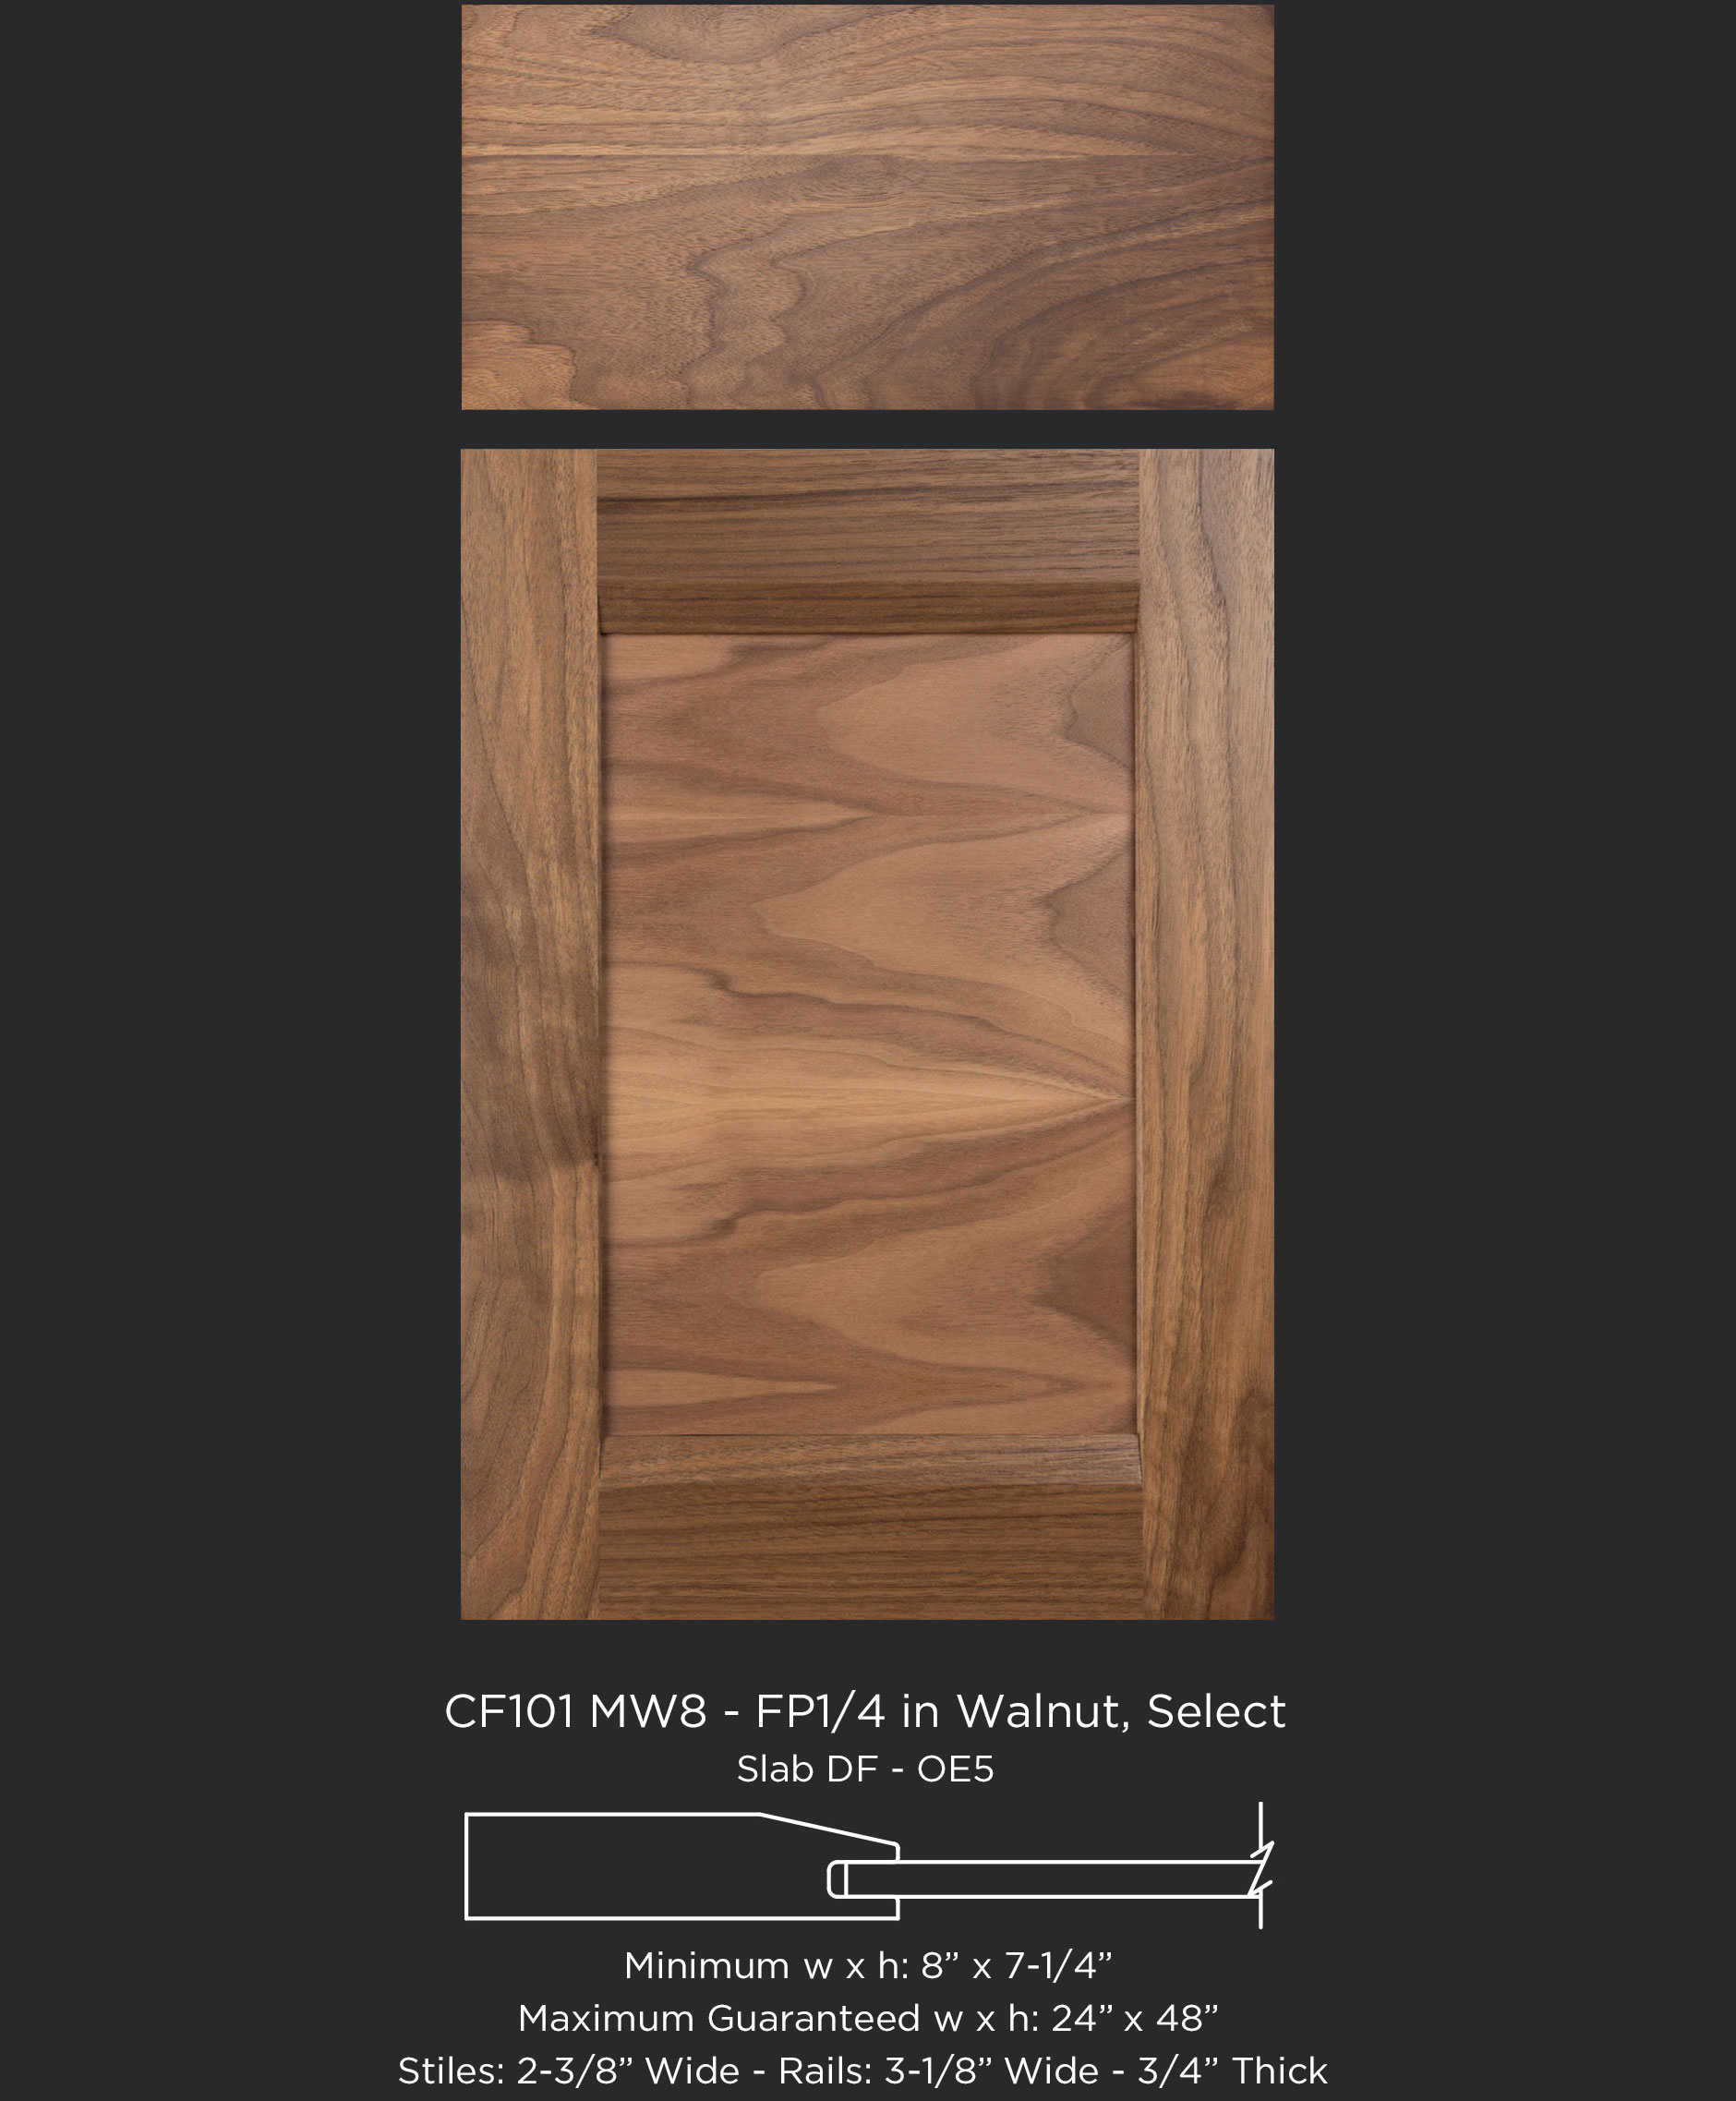 Combination Frame Cabinet Door CF101 MW8-FP1/4 with horizontal panel grain in Walnut, Select with slab drawer front